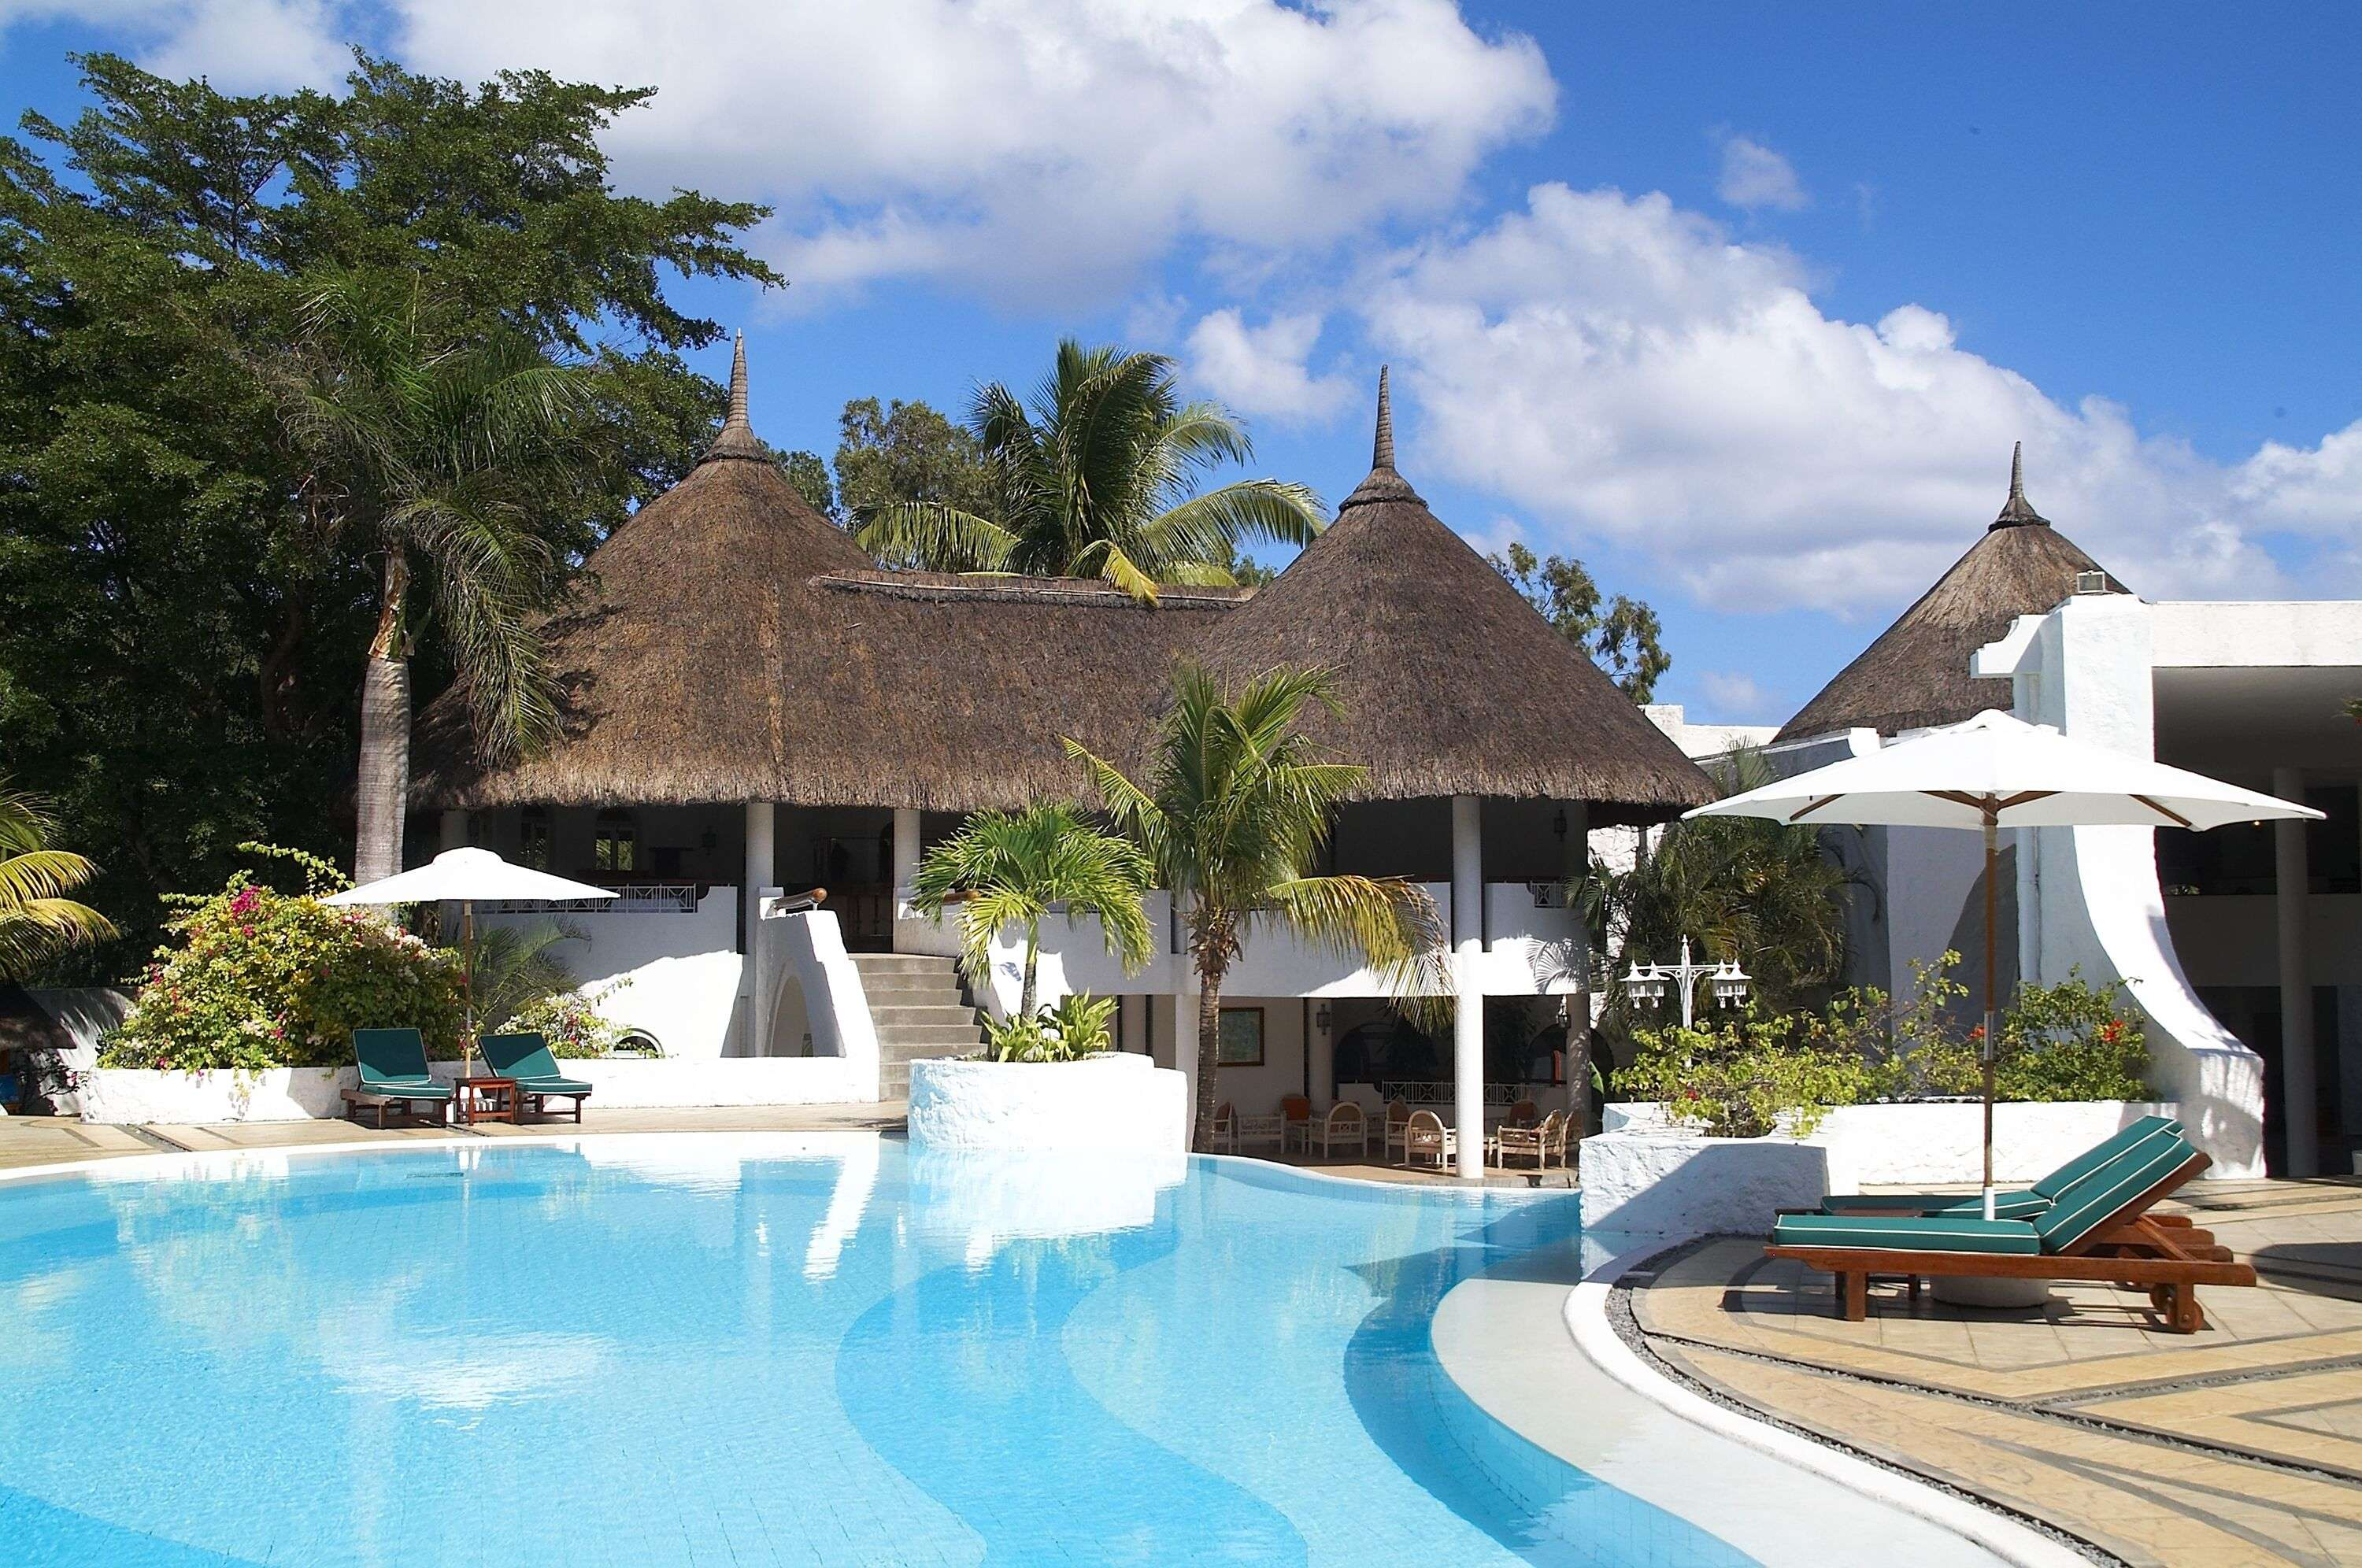 https://tropicalwarehouse.co.uk/holidays/mauritius/trou-aux-biches/casuarina-resort-spa-exclusive?blg